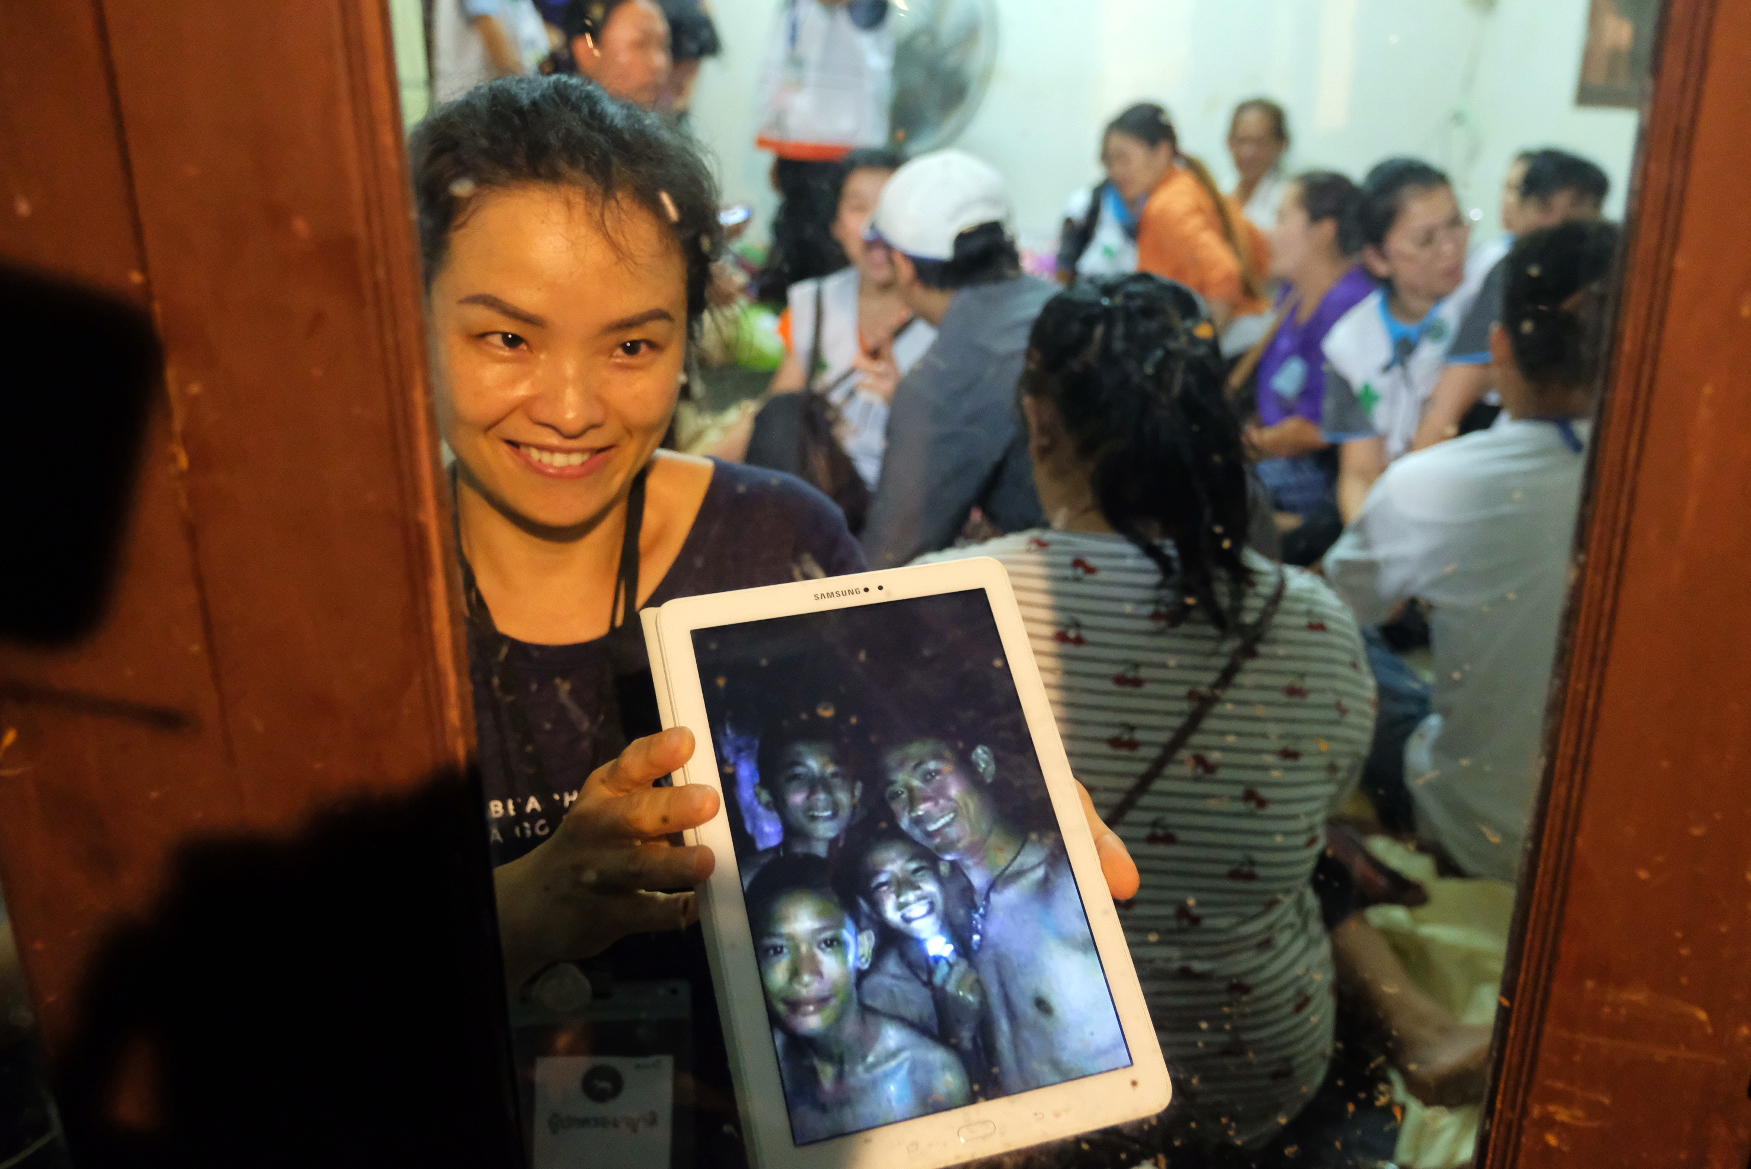 Relatives of the missing boys show photos of them after the 12 boys and their soccer coach have been found alive in the cave where they've been missing for over a week after monsoon rains blocked the main entrance on July 02, 2018 in Chiang Rai, Thailand. (Getty Images)